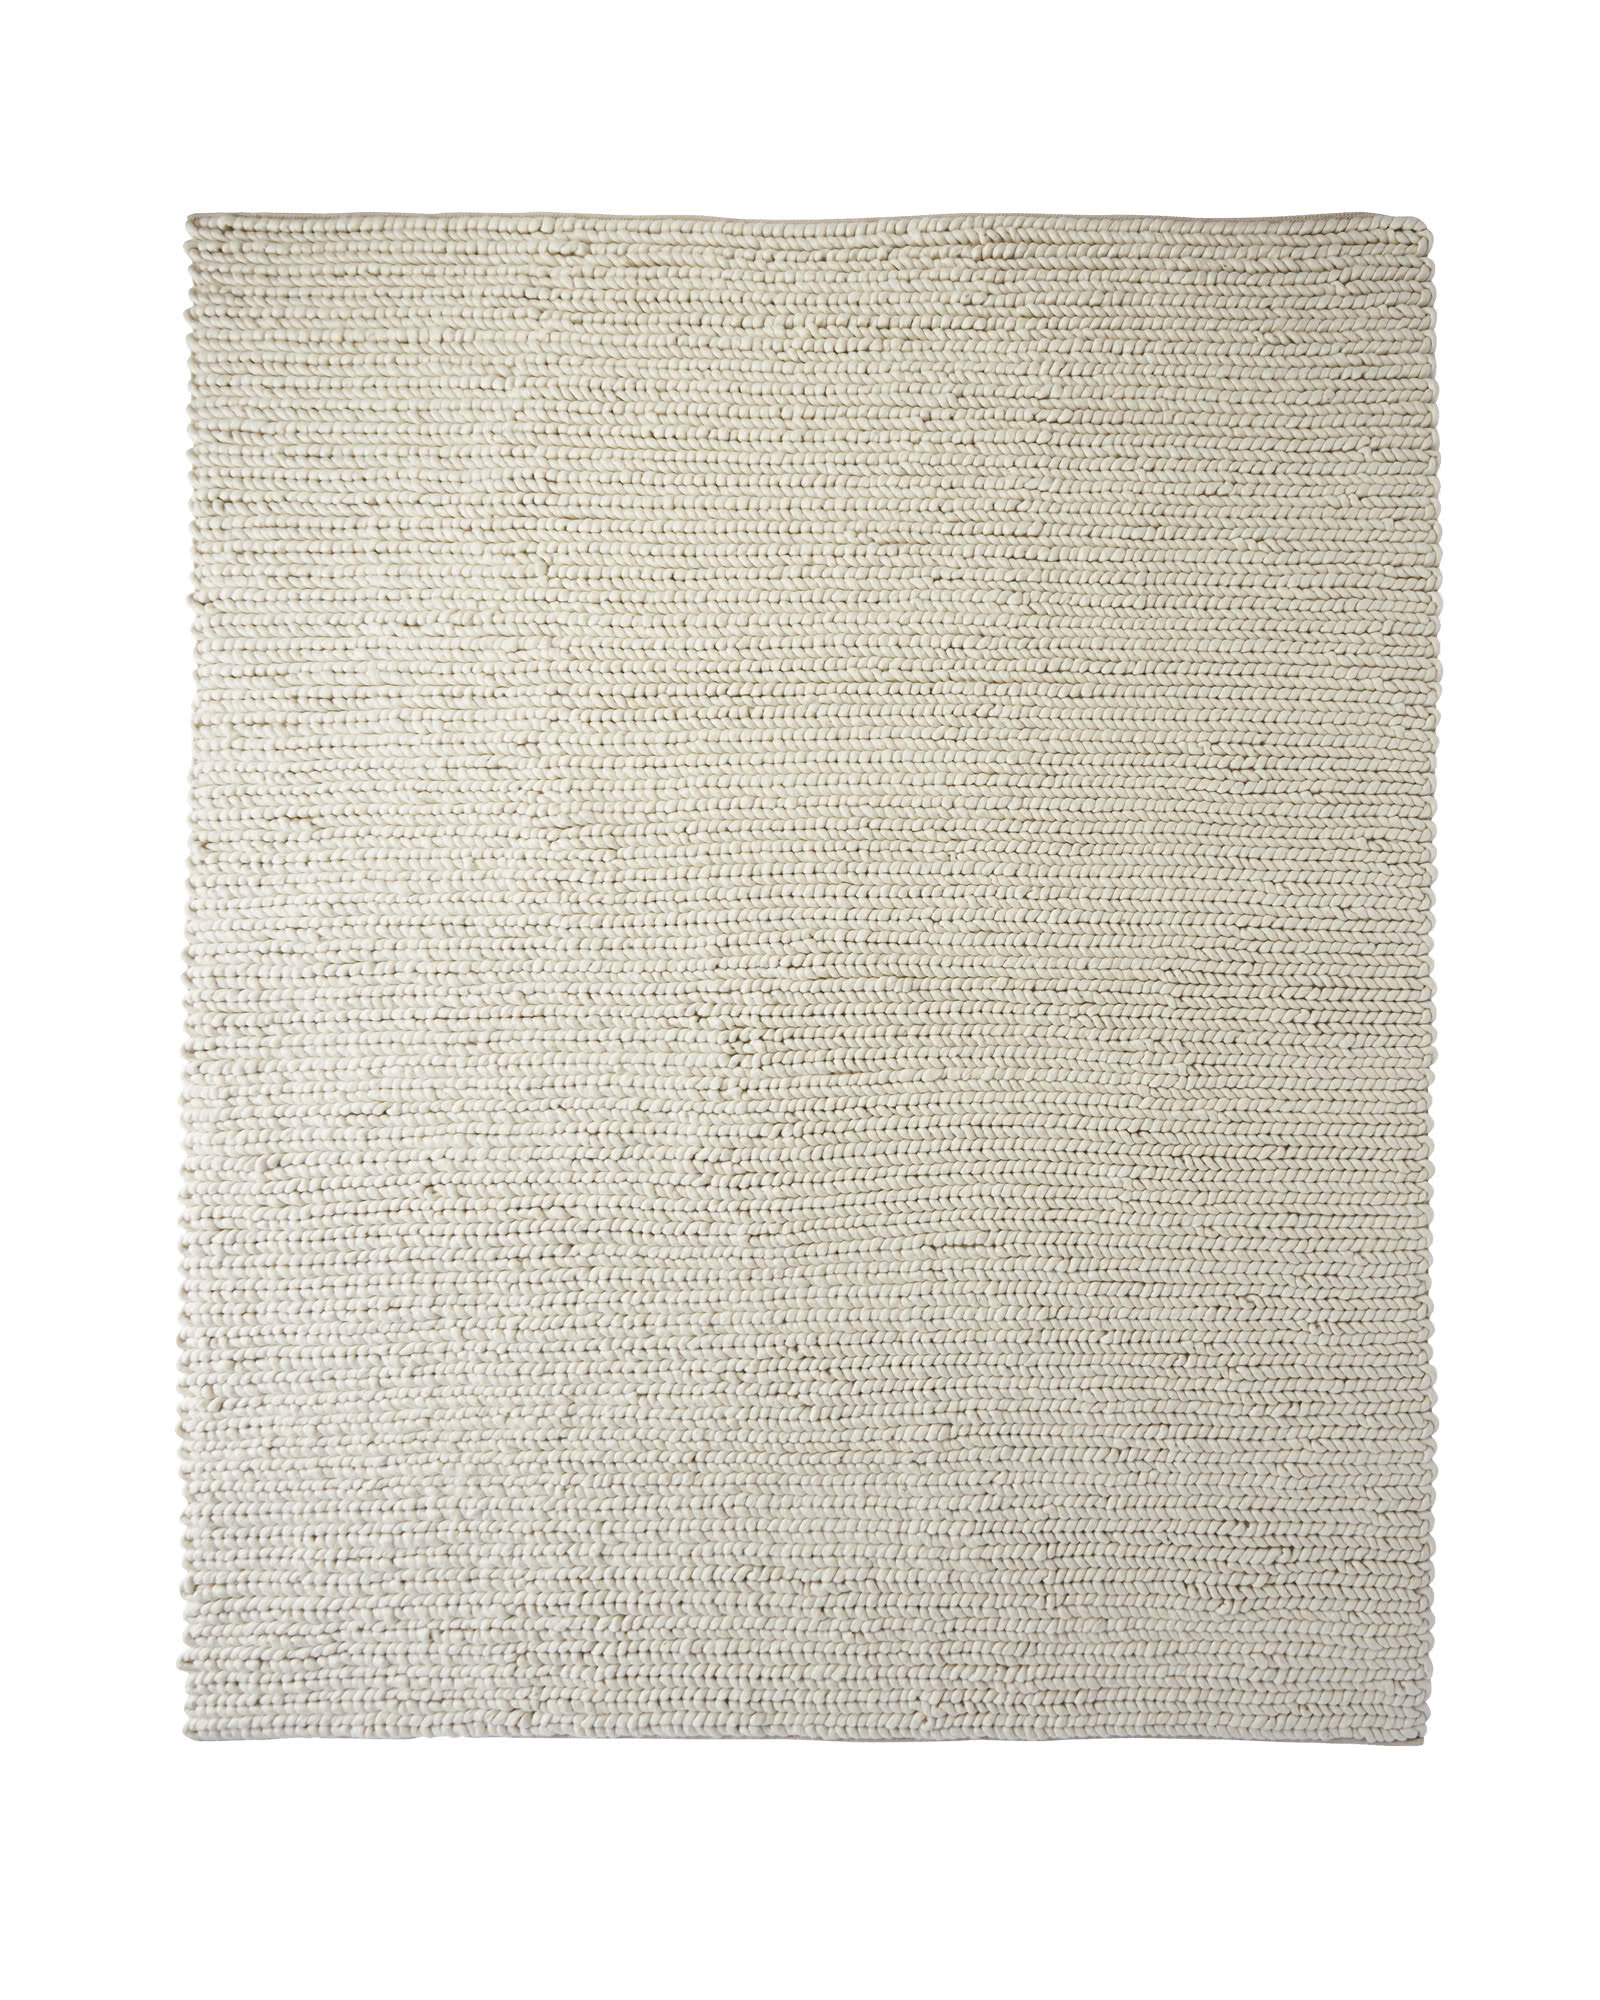 Braided Wool Rug, Ivory